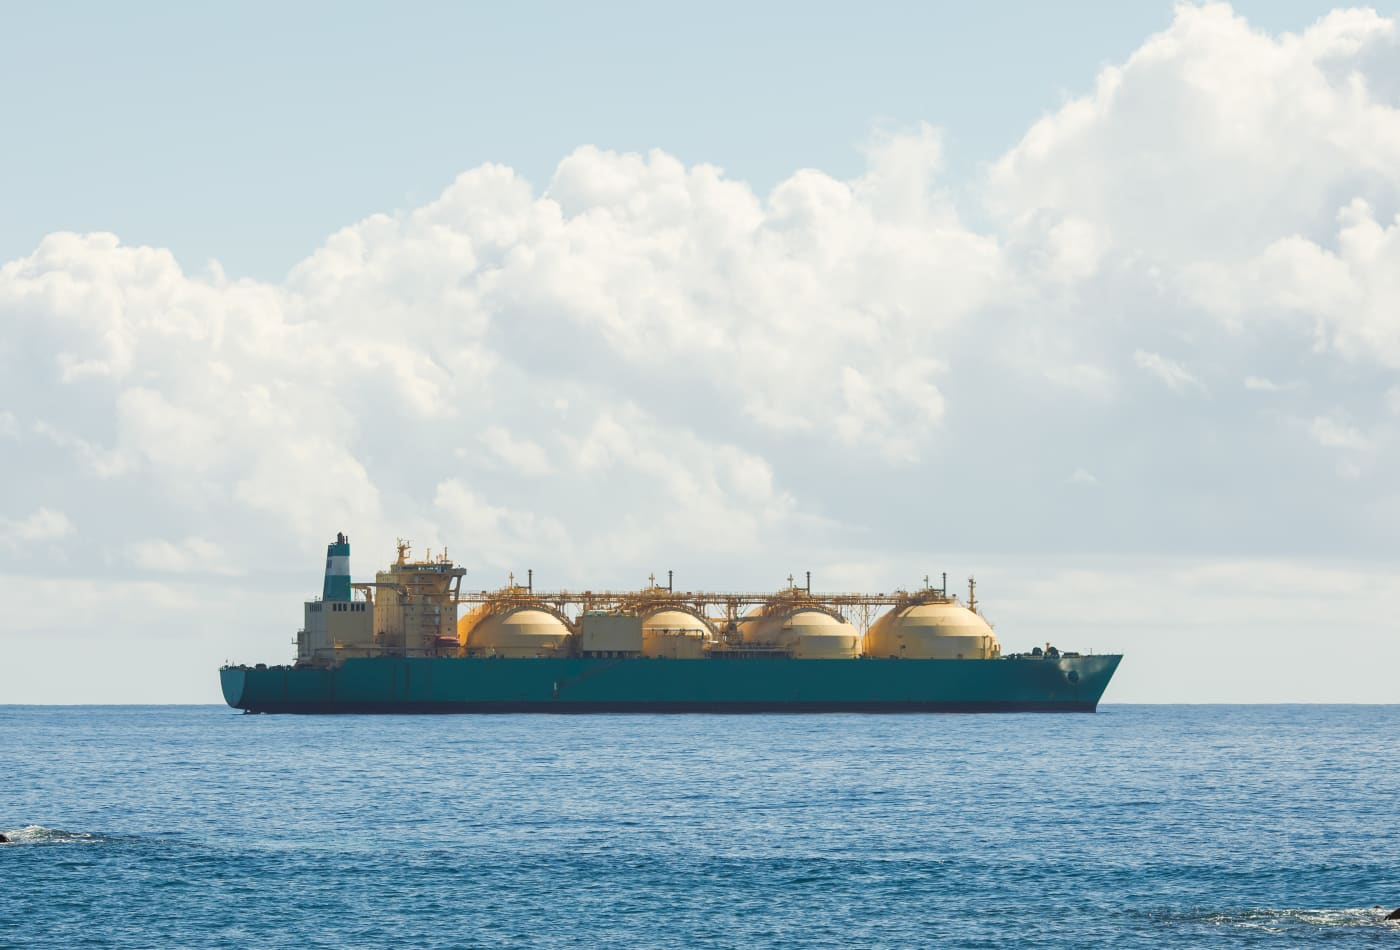 Demand for liquefied natural gas set to double by 2040, according to Shell